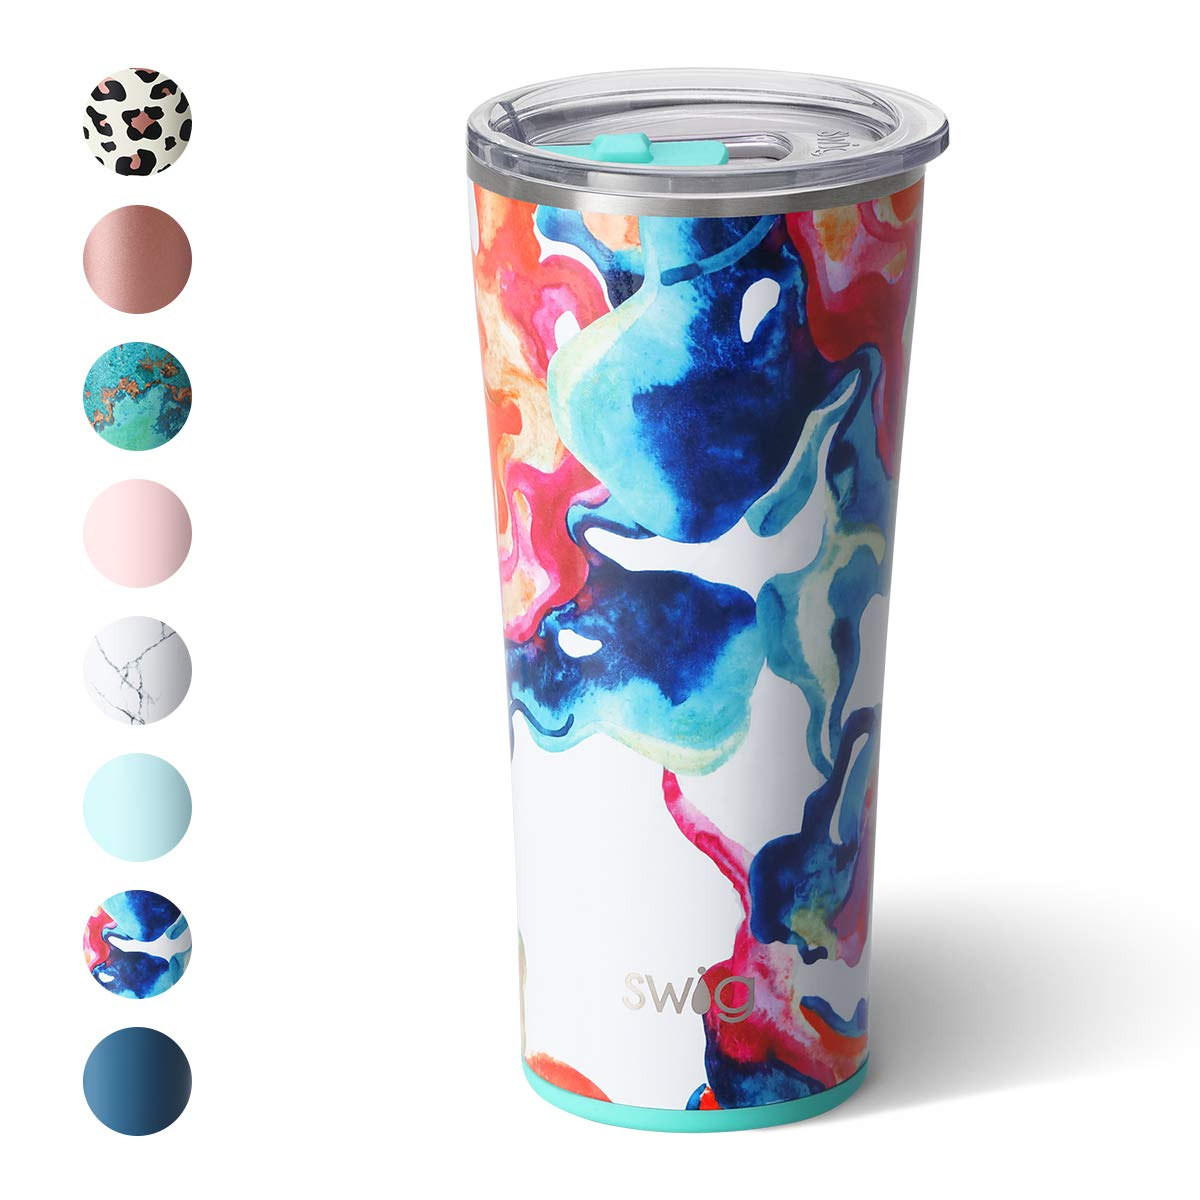 Swig Life 22oz Triple Insulated Stainless Steel Skinny Tumbler with Lid, Dishwasher Safe, Double Wall, and Vacuum Sealed Travel Coffee Tumbler in our Color Swirl Pattern (Multiple Patterns Available)